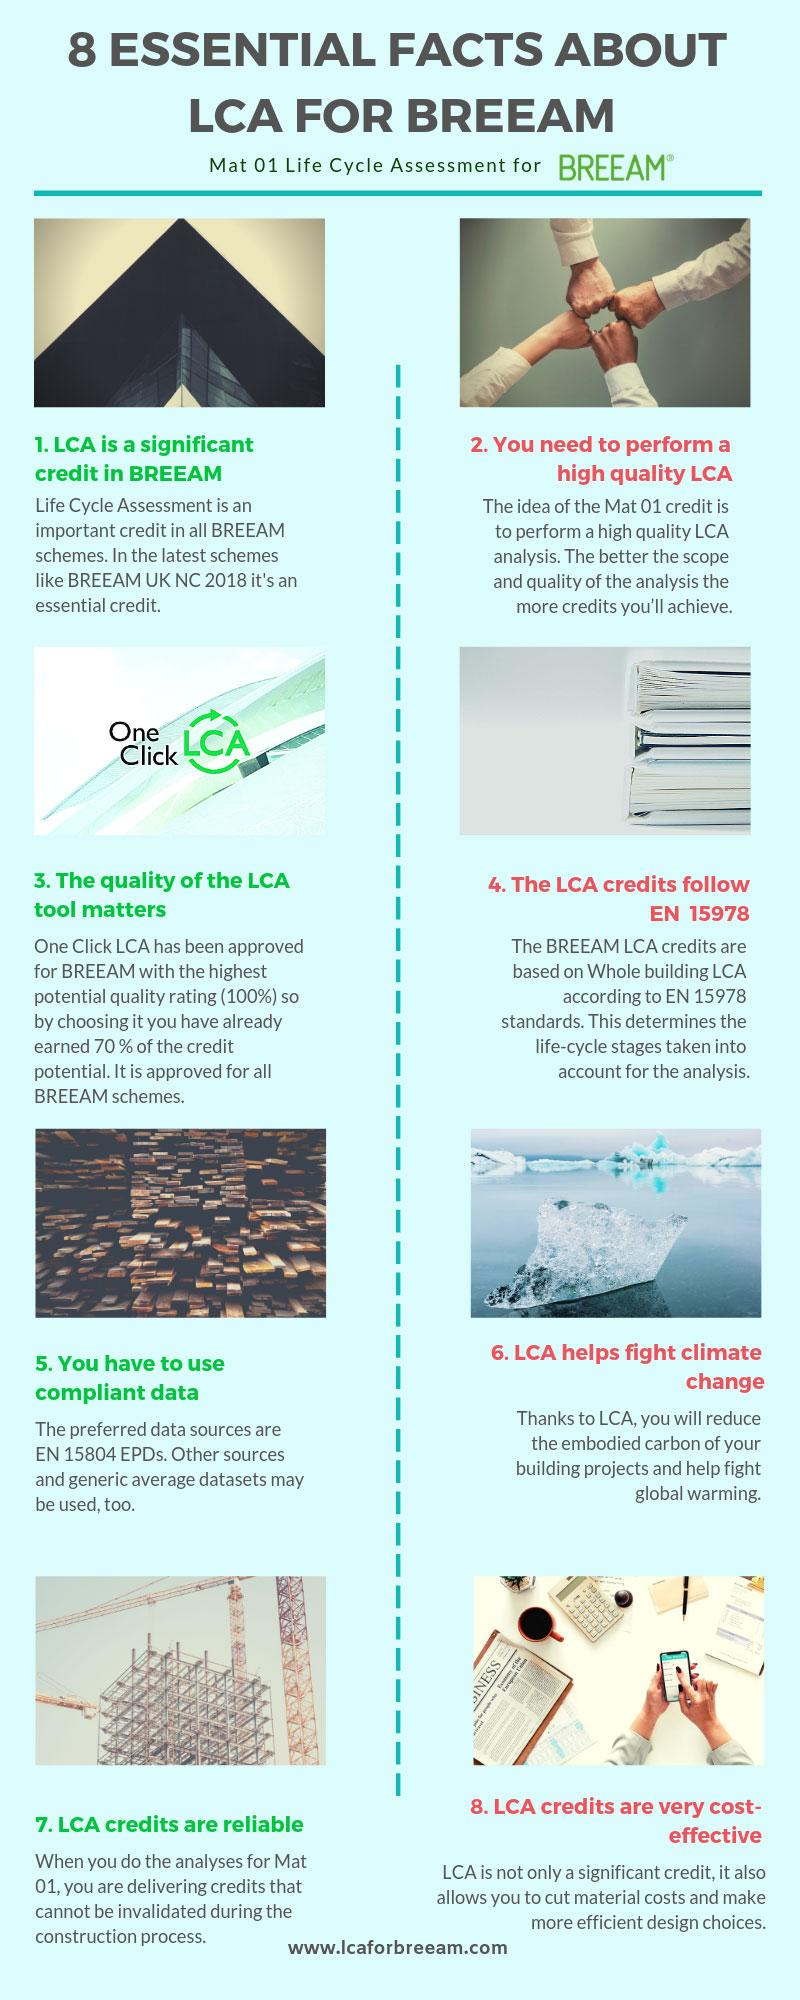 BREEAM 2018 Mat 01: challenges, opportunities, and the